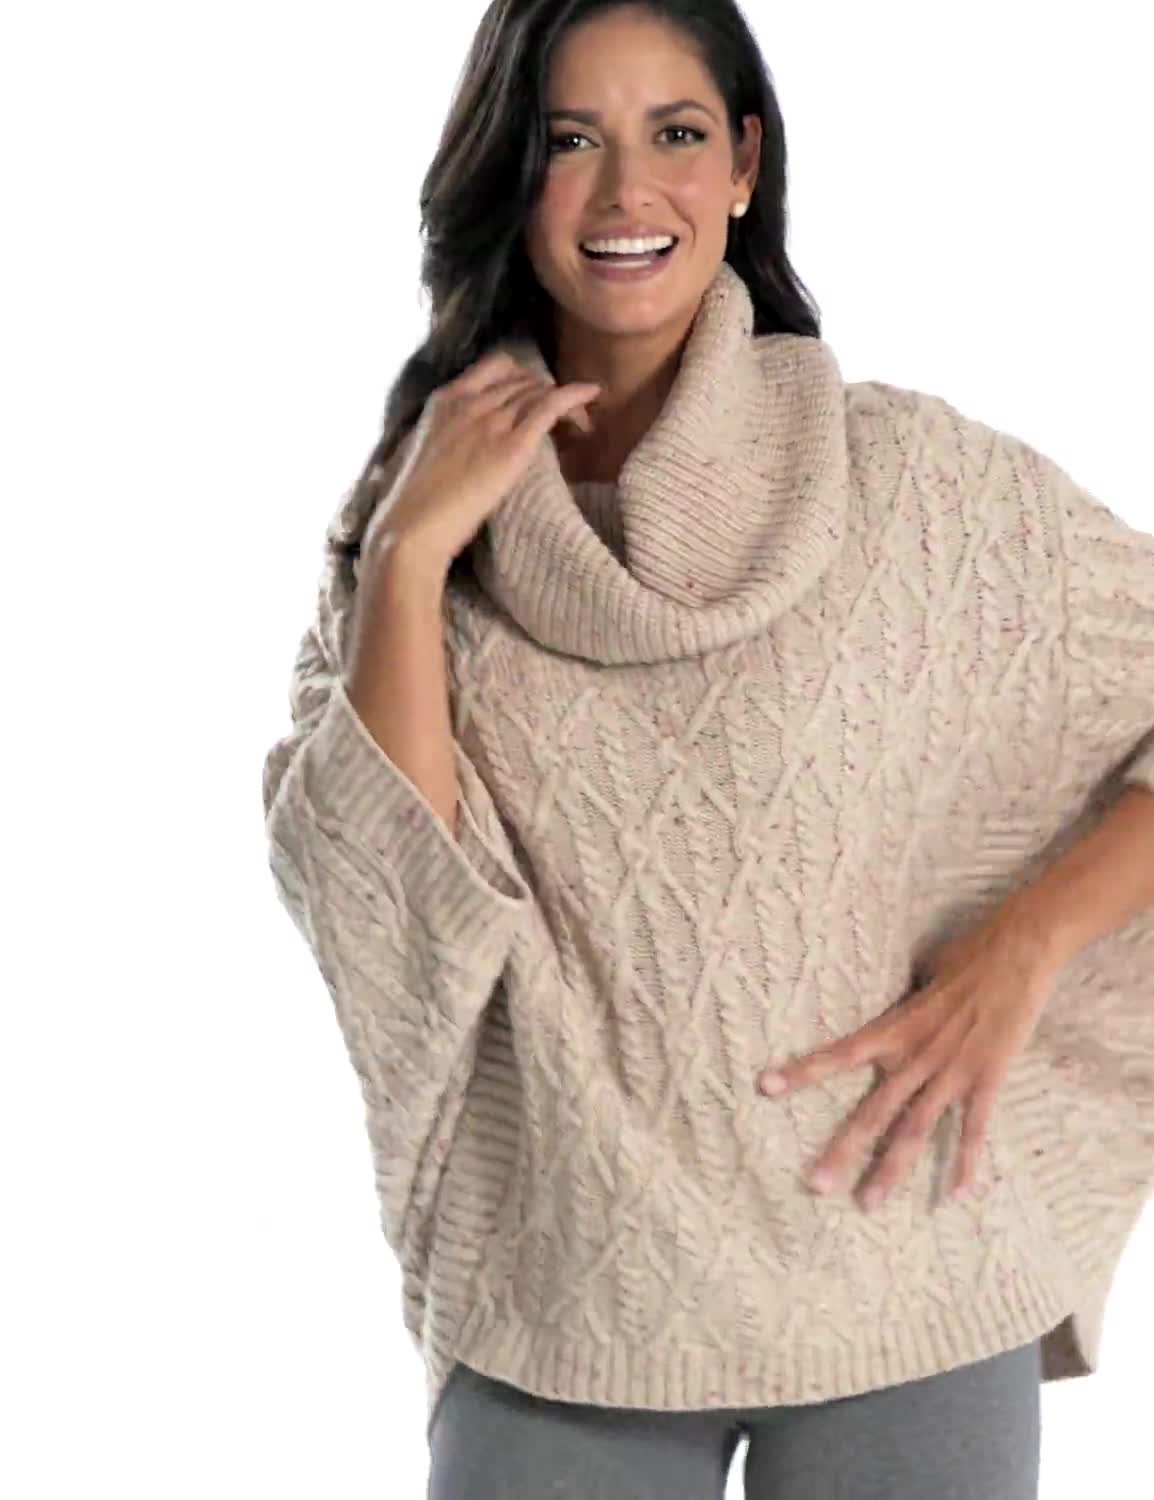 Westport Novelty Yarn Poncho Sweater - Misses - Video